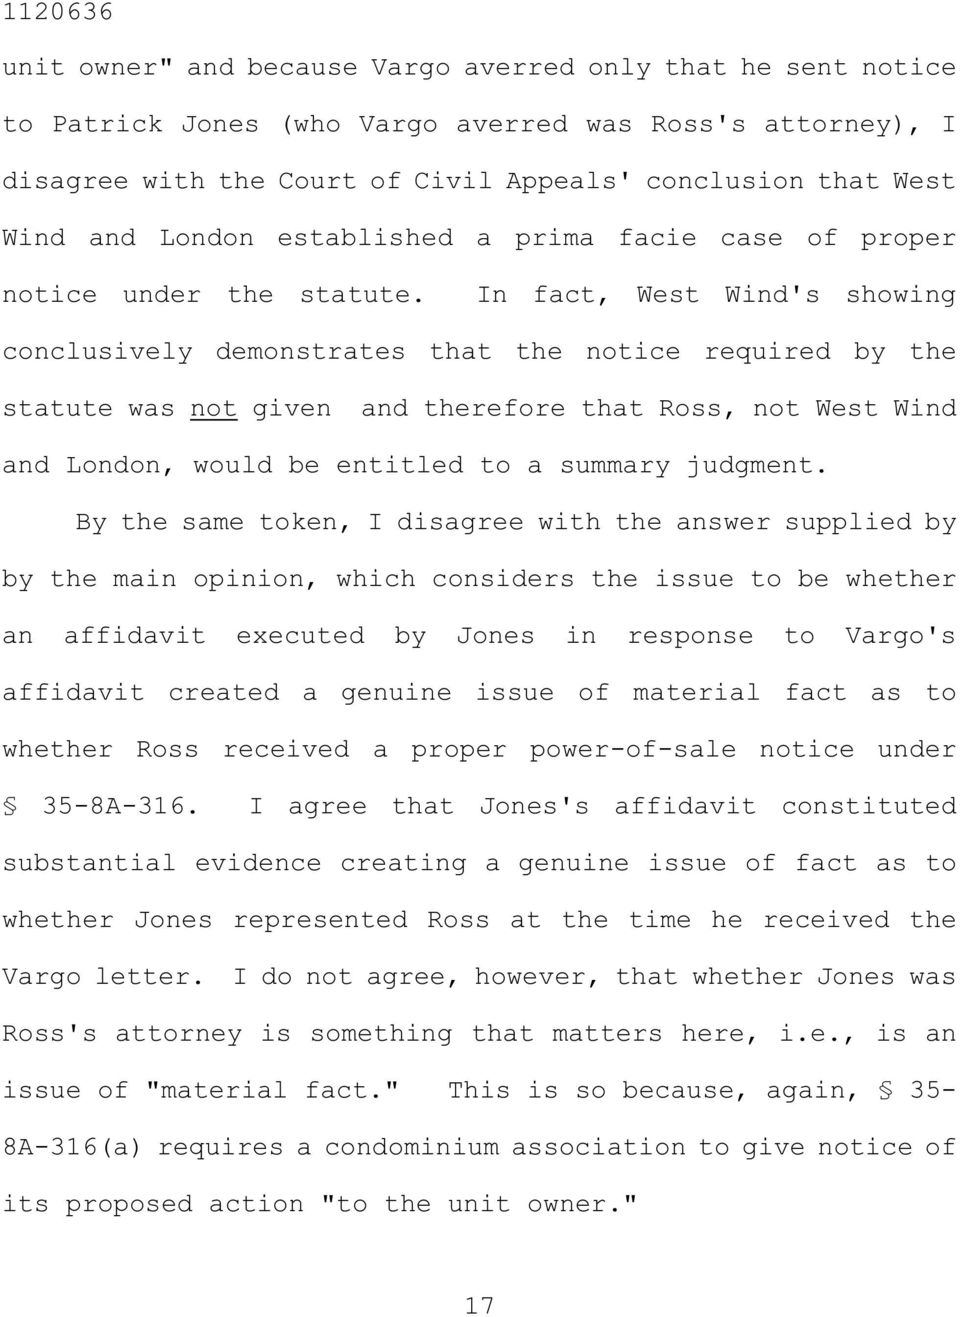 In fact, West Wind's showing conclusively demonstrates that the notice required by the statute was not given and therefore that Ross, not West Wind and London, would be entitled to a summary judgment.